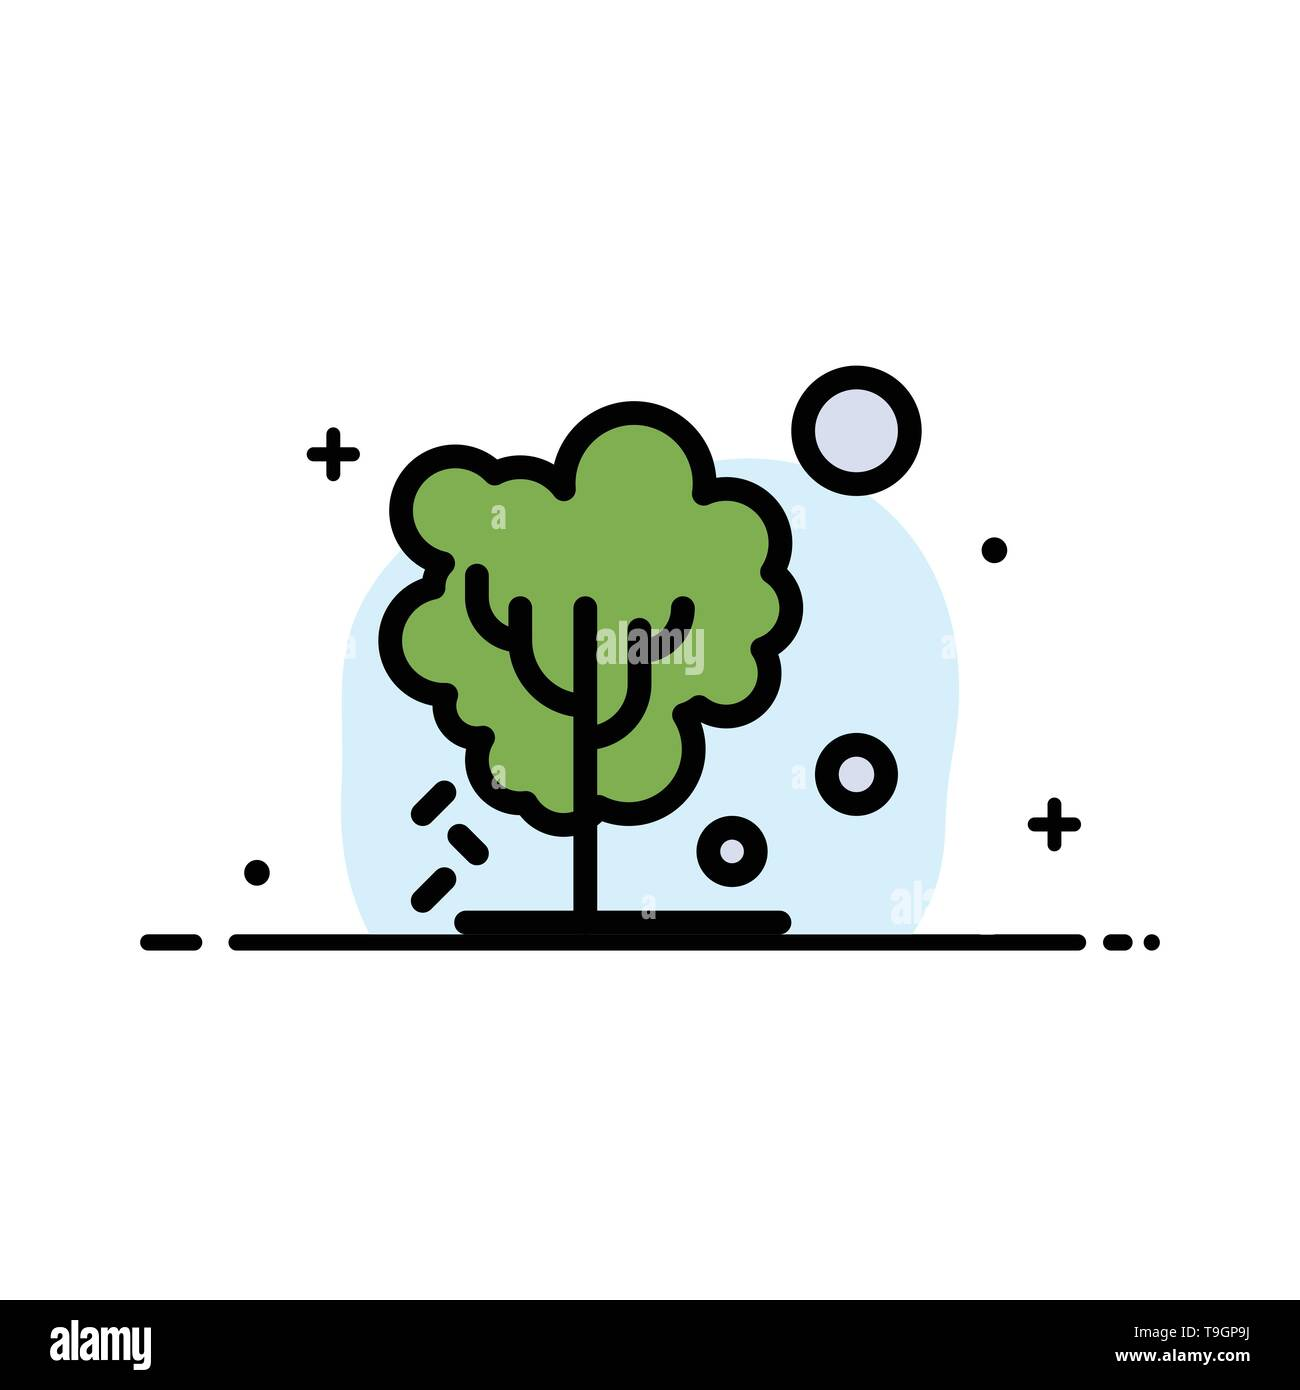 Dry, Global, Soil, Tree, Warming  Business Flat Line Filled Icon Vector Banner Template - Stock Image